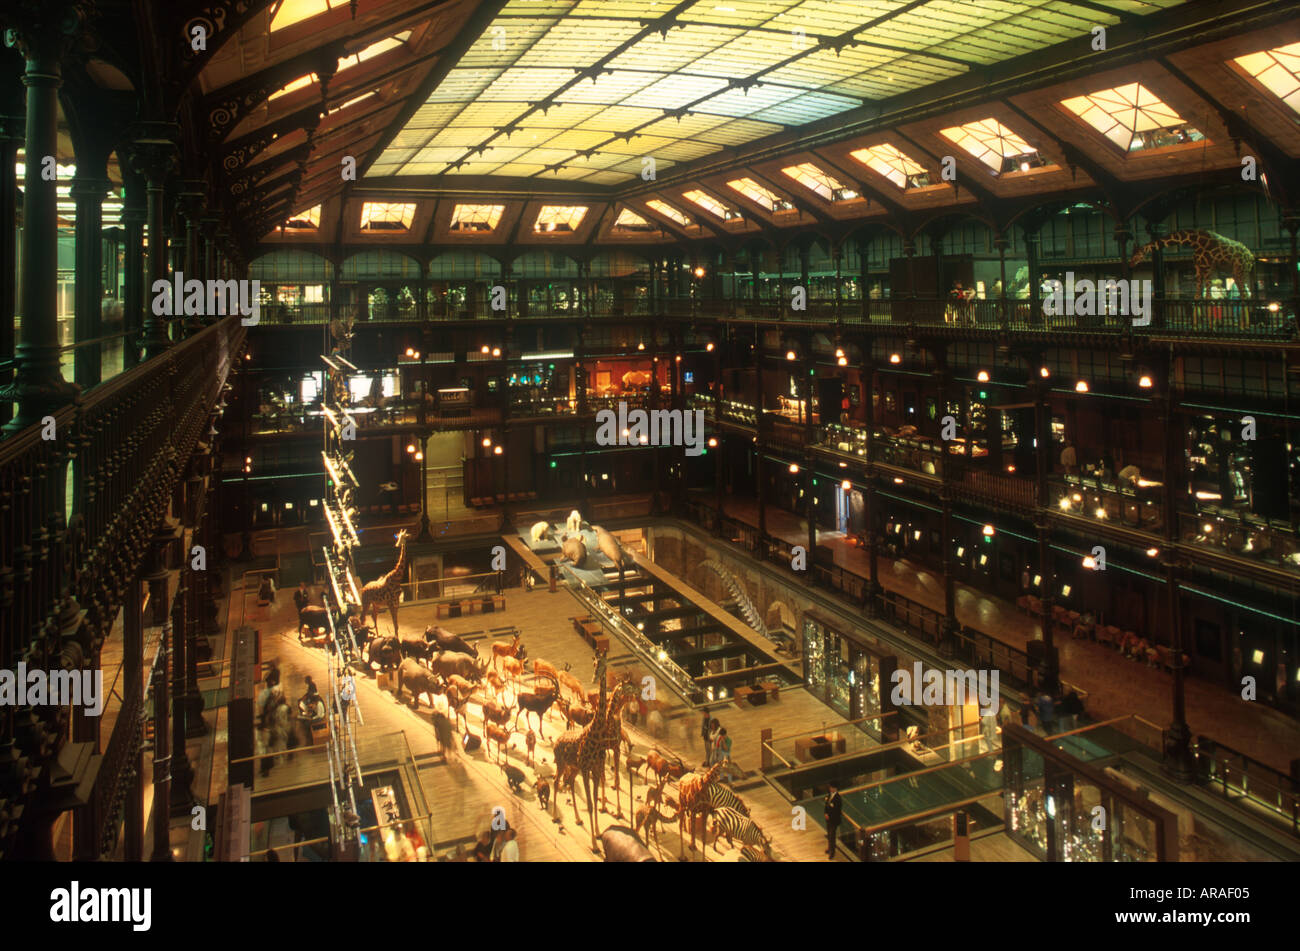 Hall of th Paleontological Gallery Museum National d Histoire Naturelle Jardin des Plantes Paris France Europe  - Stock Image